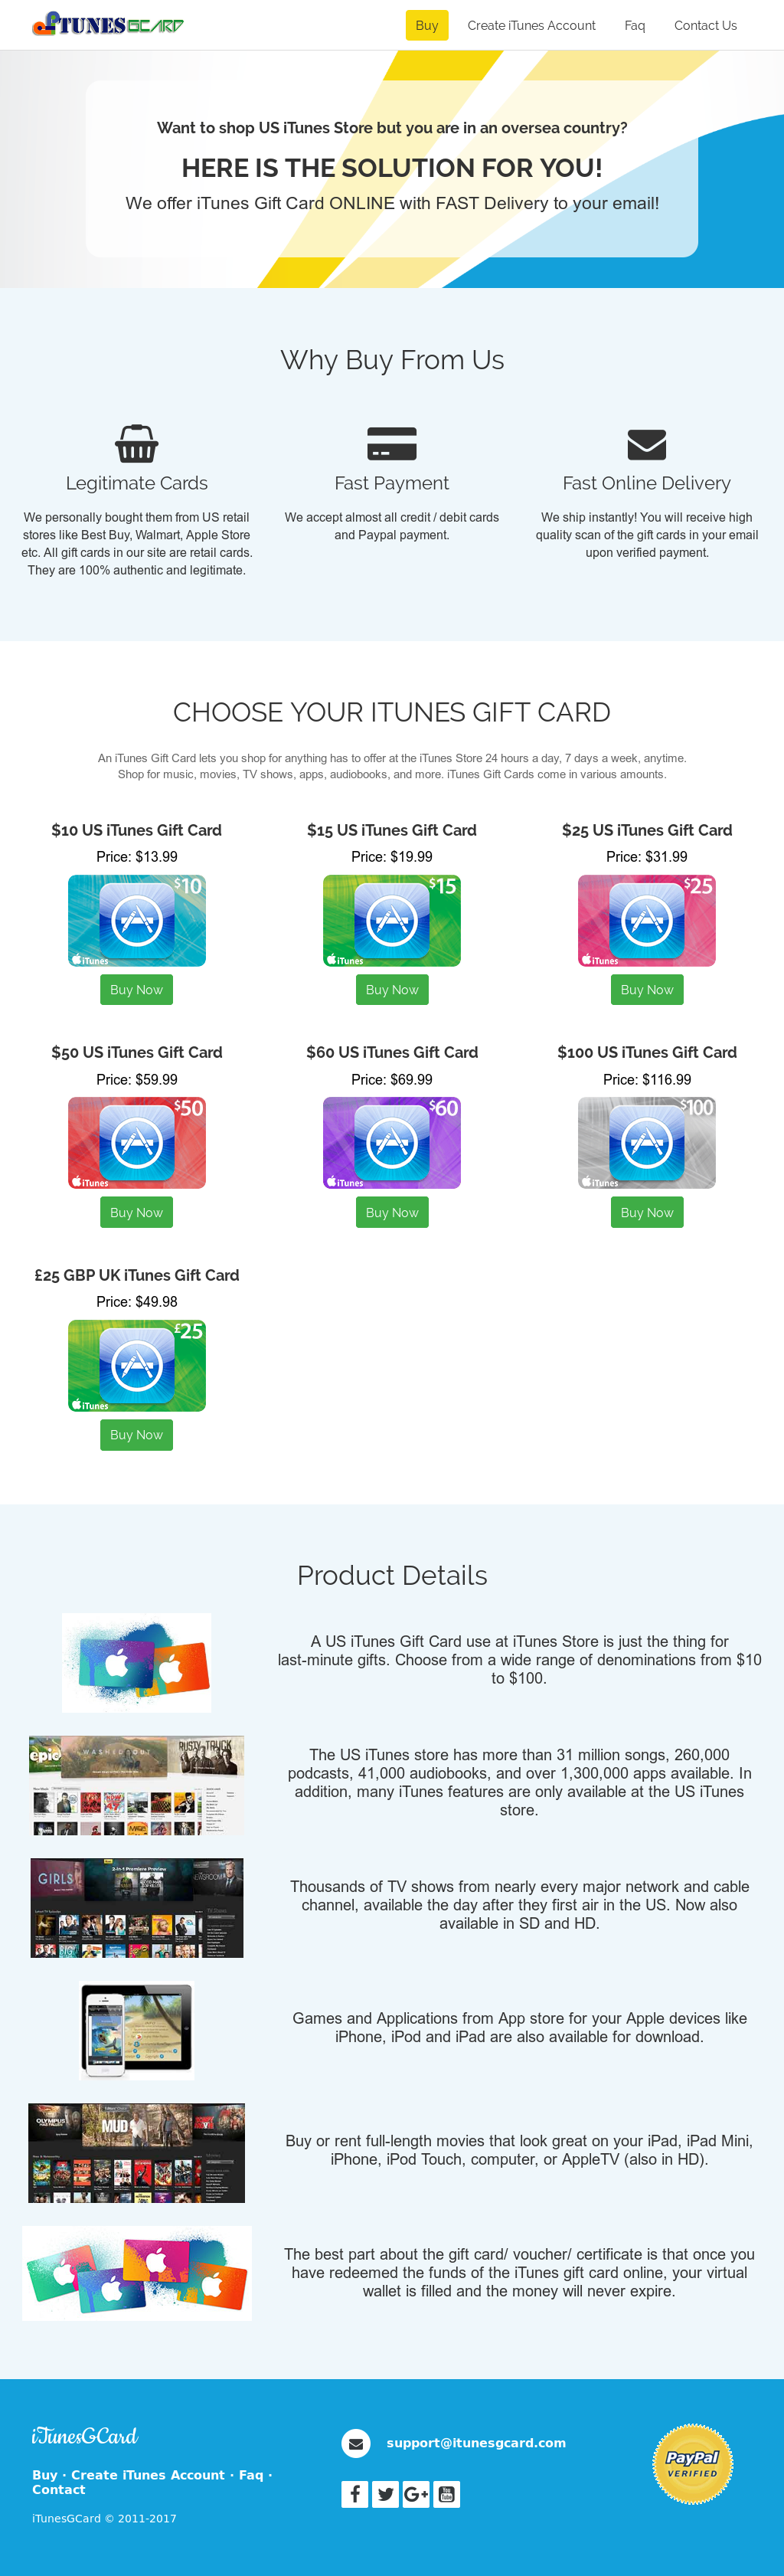 Itunes Gift Card Instant Online Delivery Itunesgcard Competitors Us 100 Website History